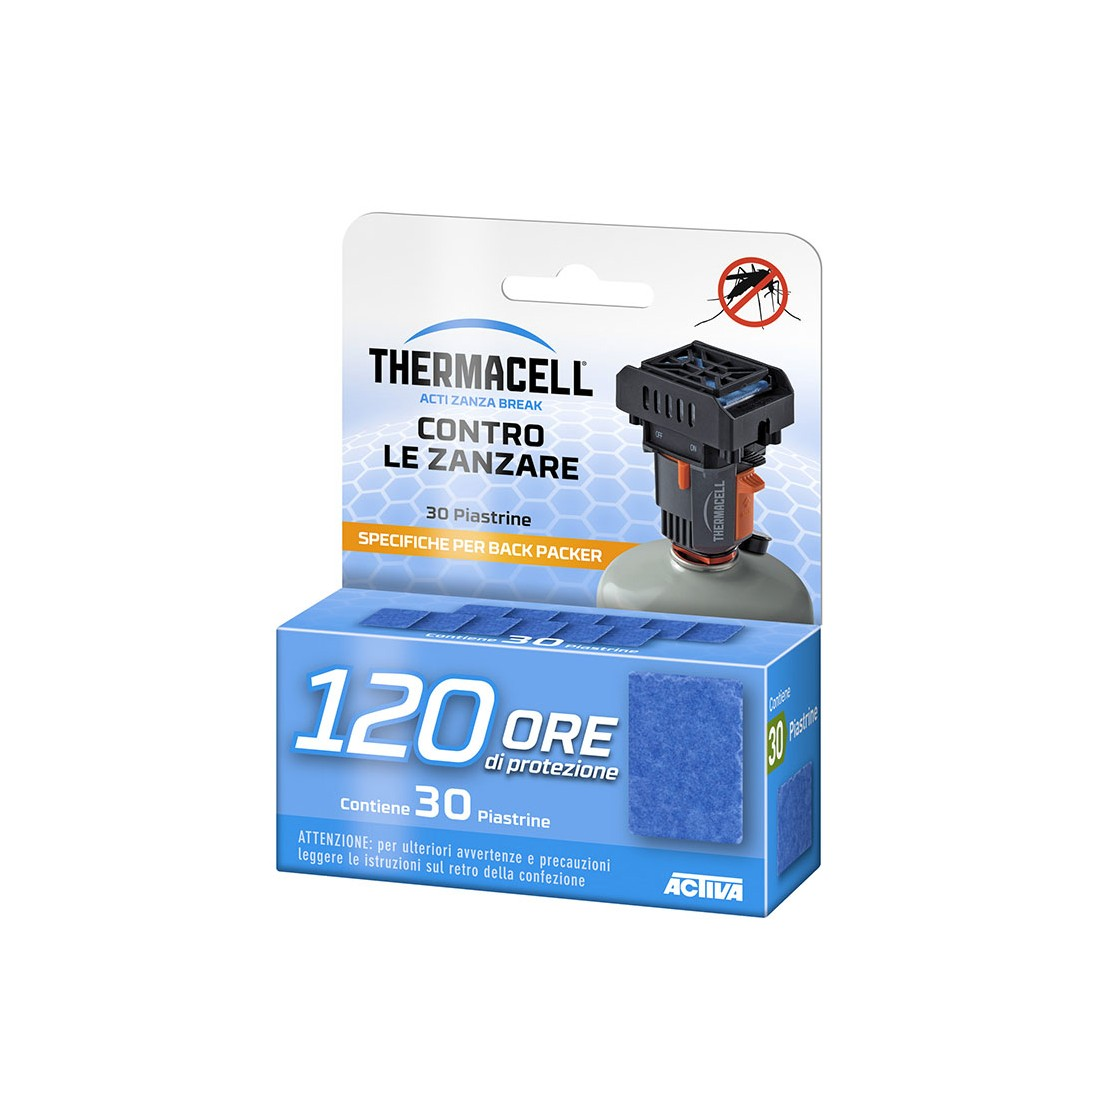 Thermacell ricarica 120 Ore Piastrine Backpacker